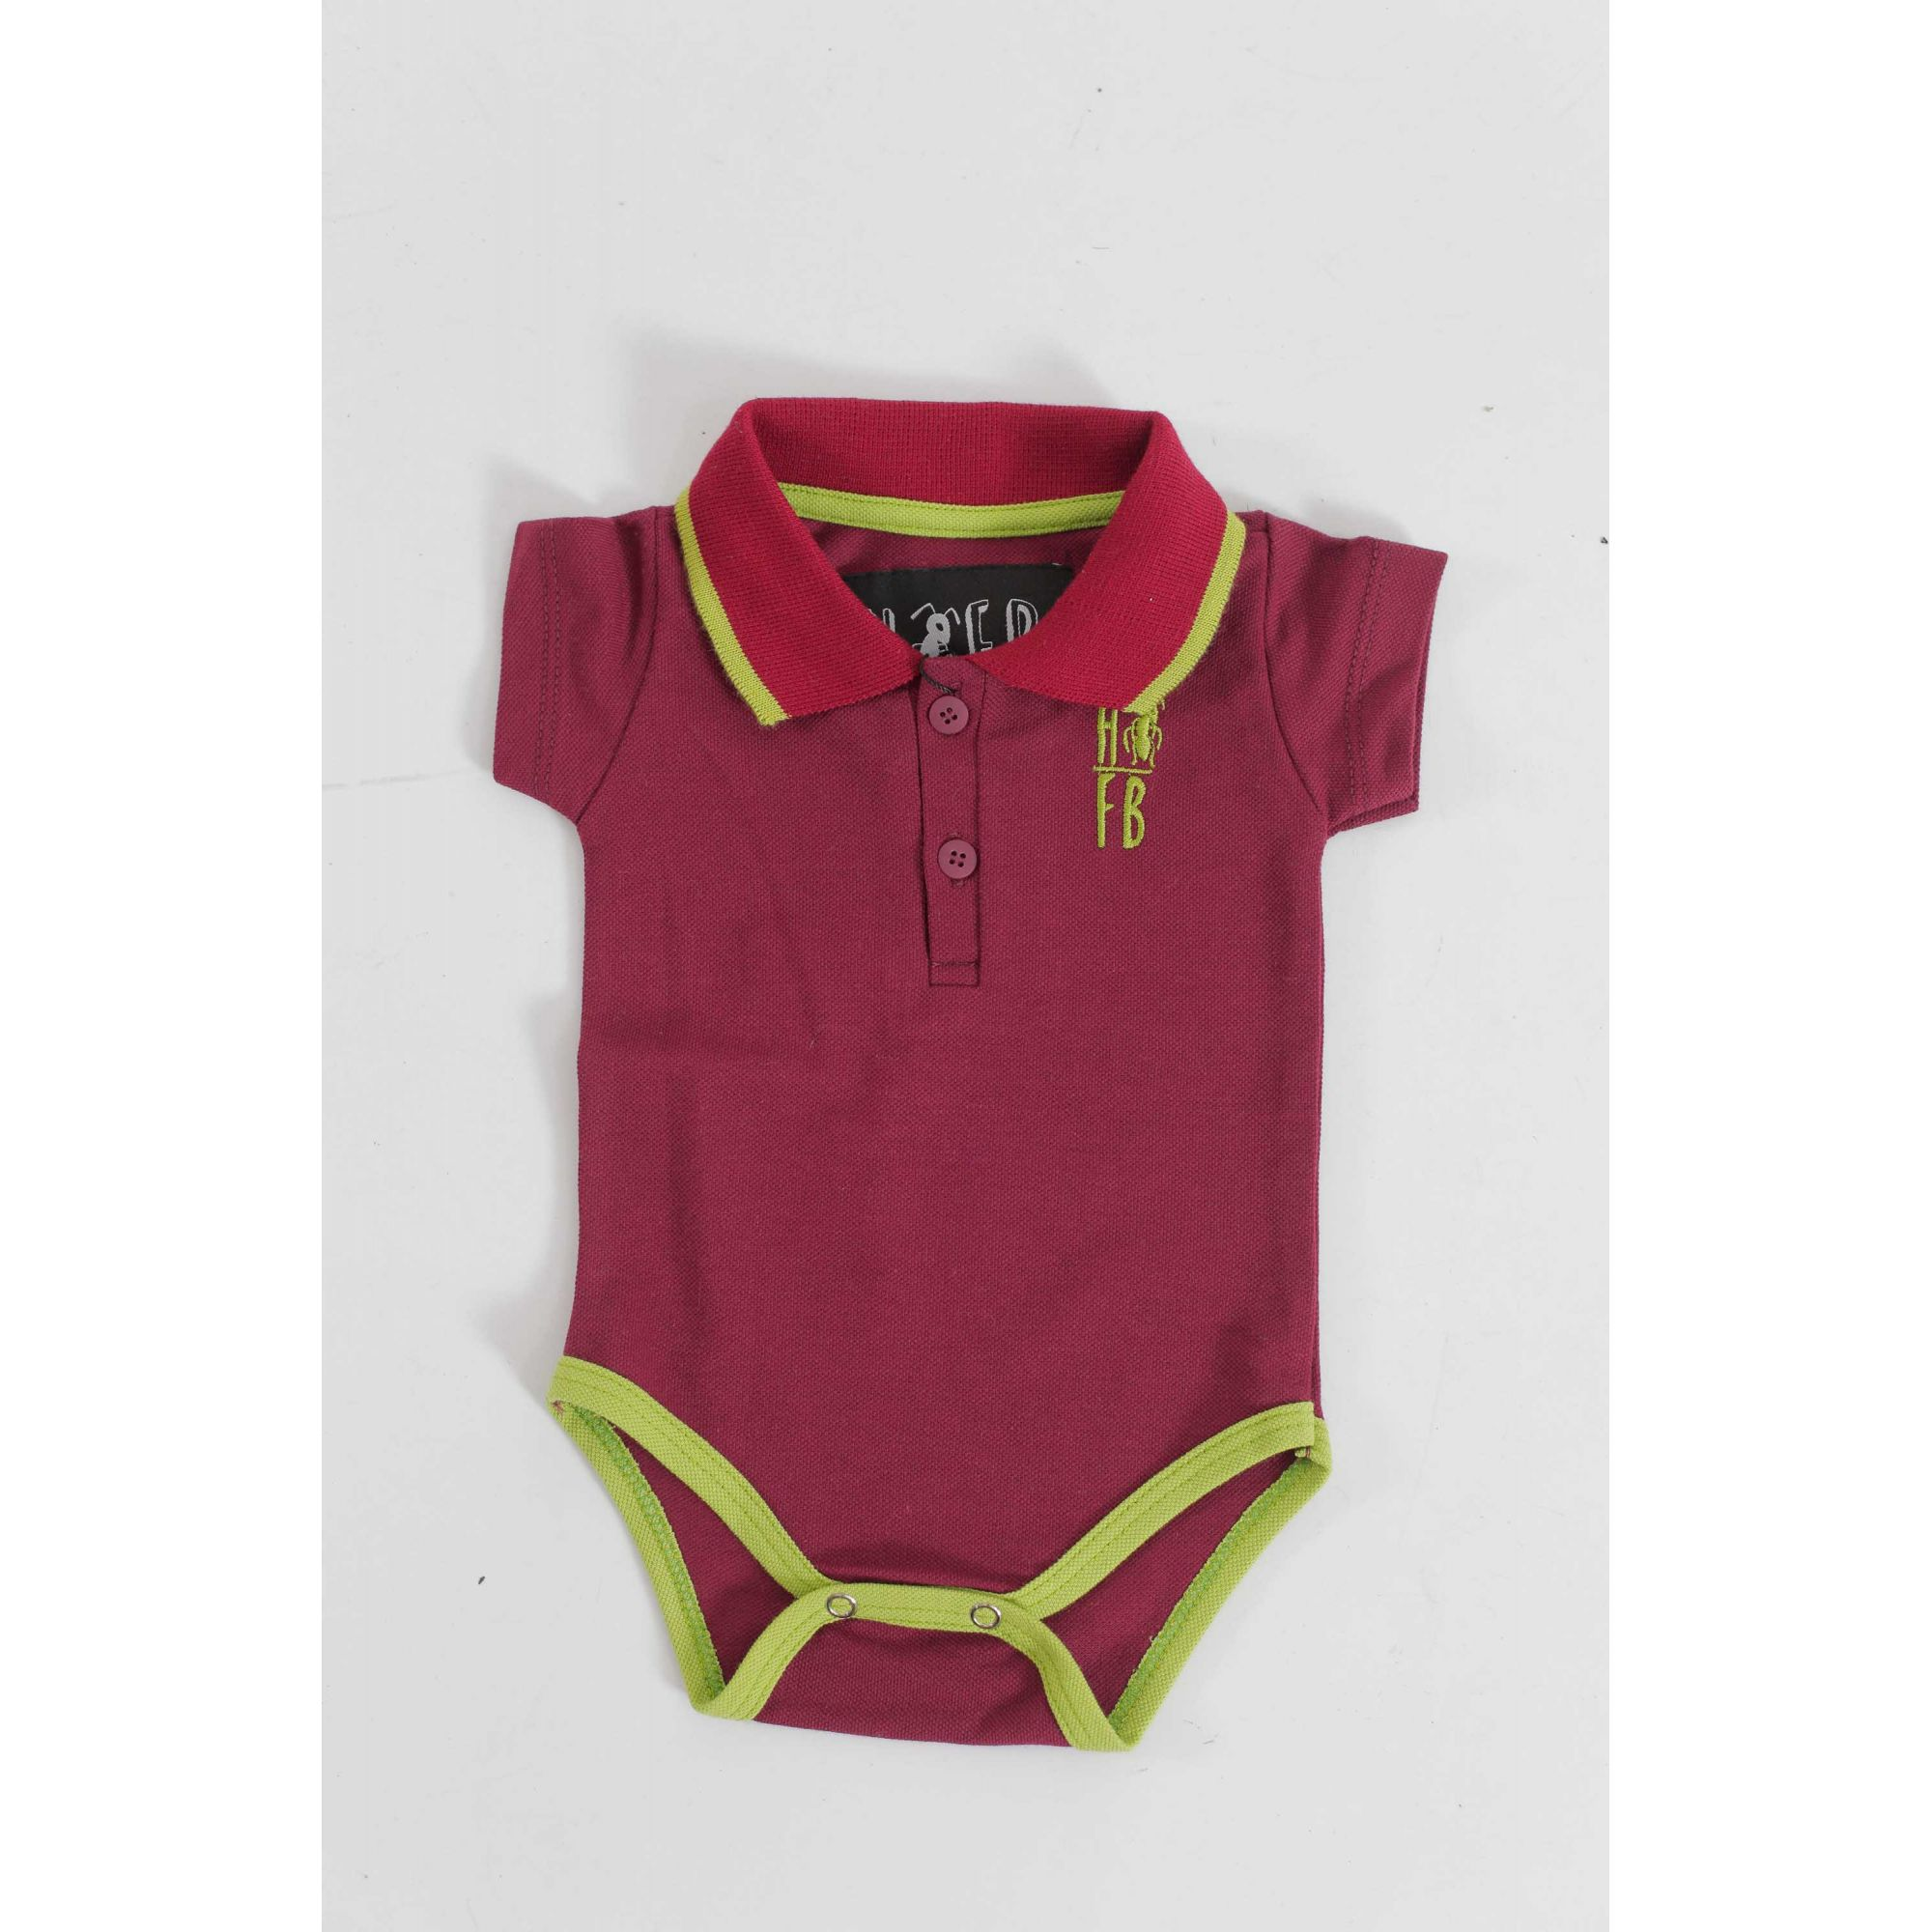 Camisa Polo ou Body Infantil Bordo  - Heitor Fashion Brazil